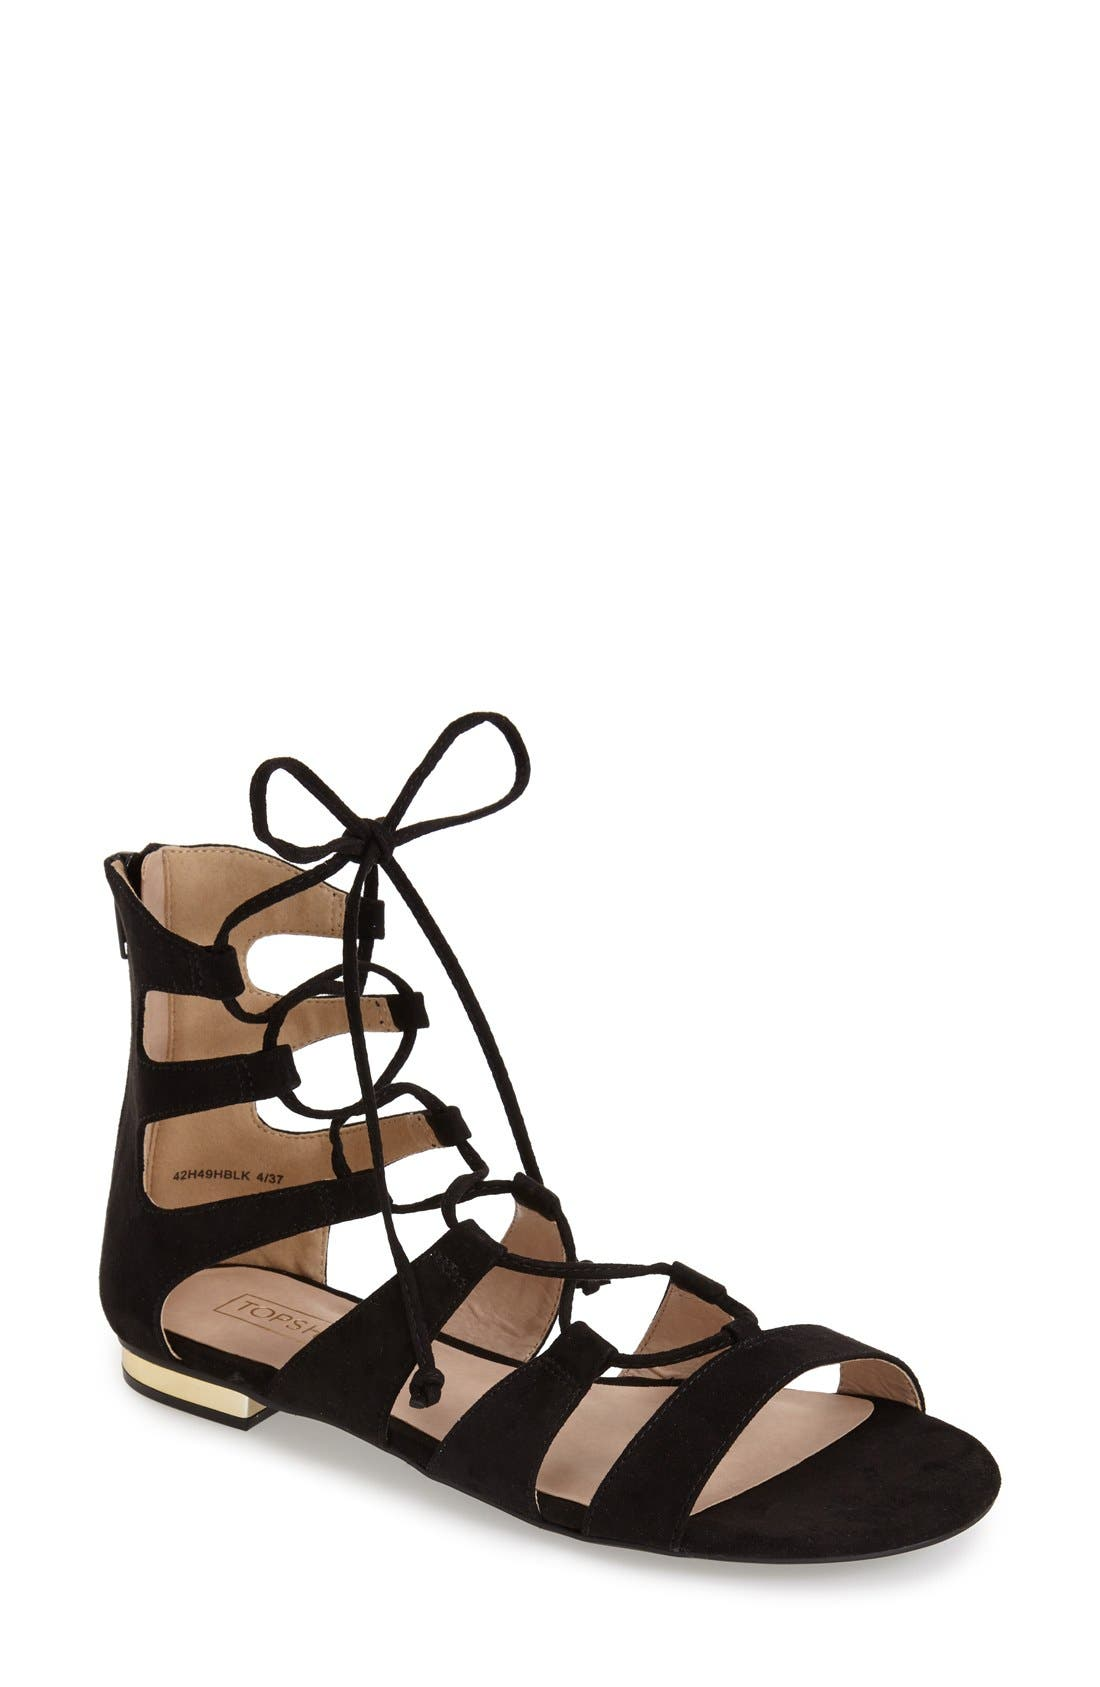 TOPSHOP, Lace-Up Gladiator Sandal, Main thumbnail 1, color, 001